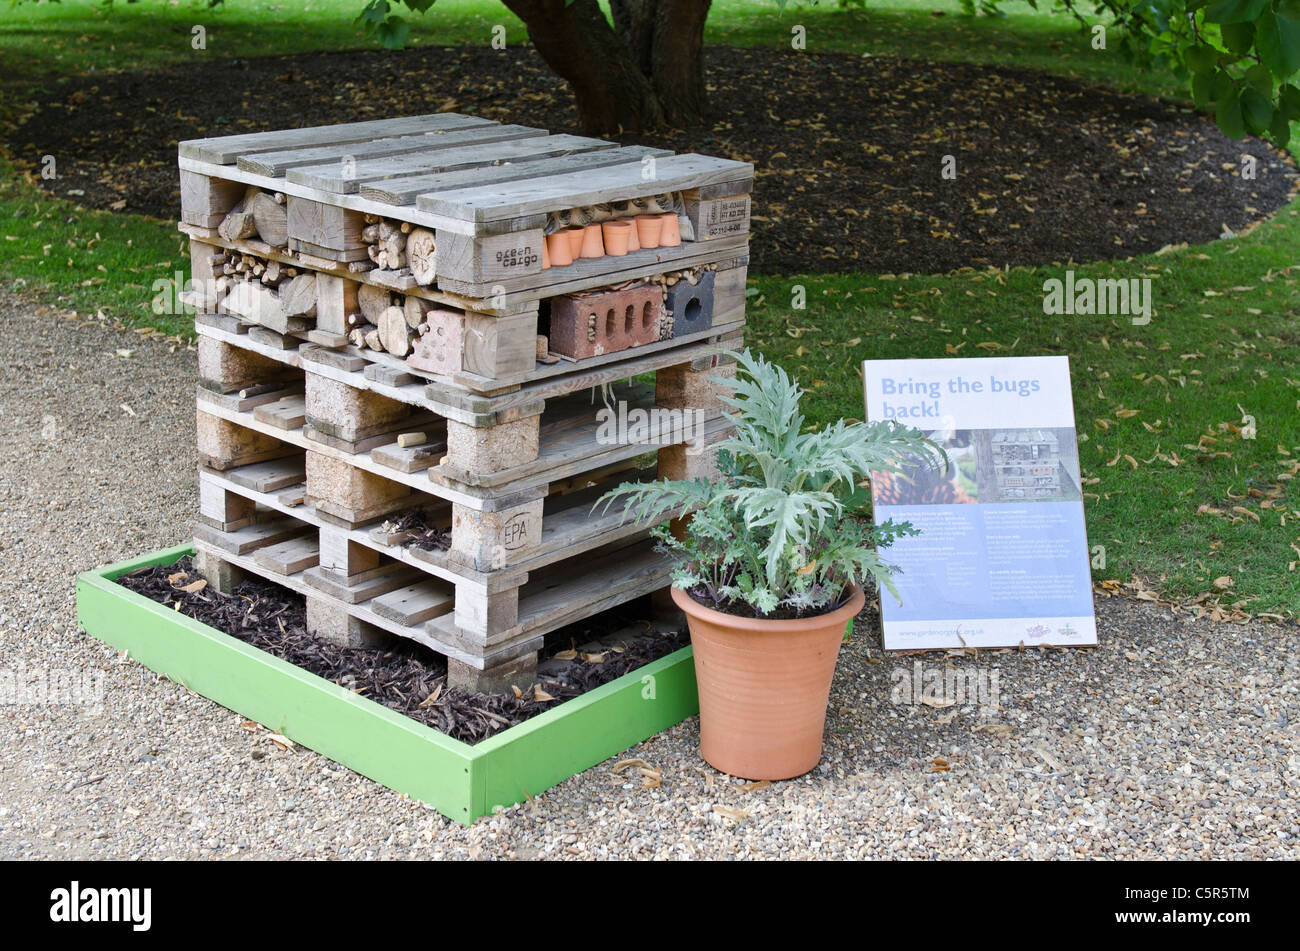 Create insect habitats display Prince Charles's Start initiative for sustainable living.Clarence House garden - Stock Image